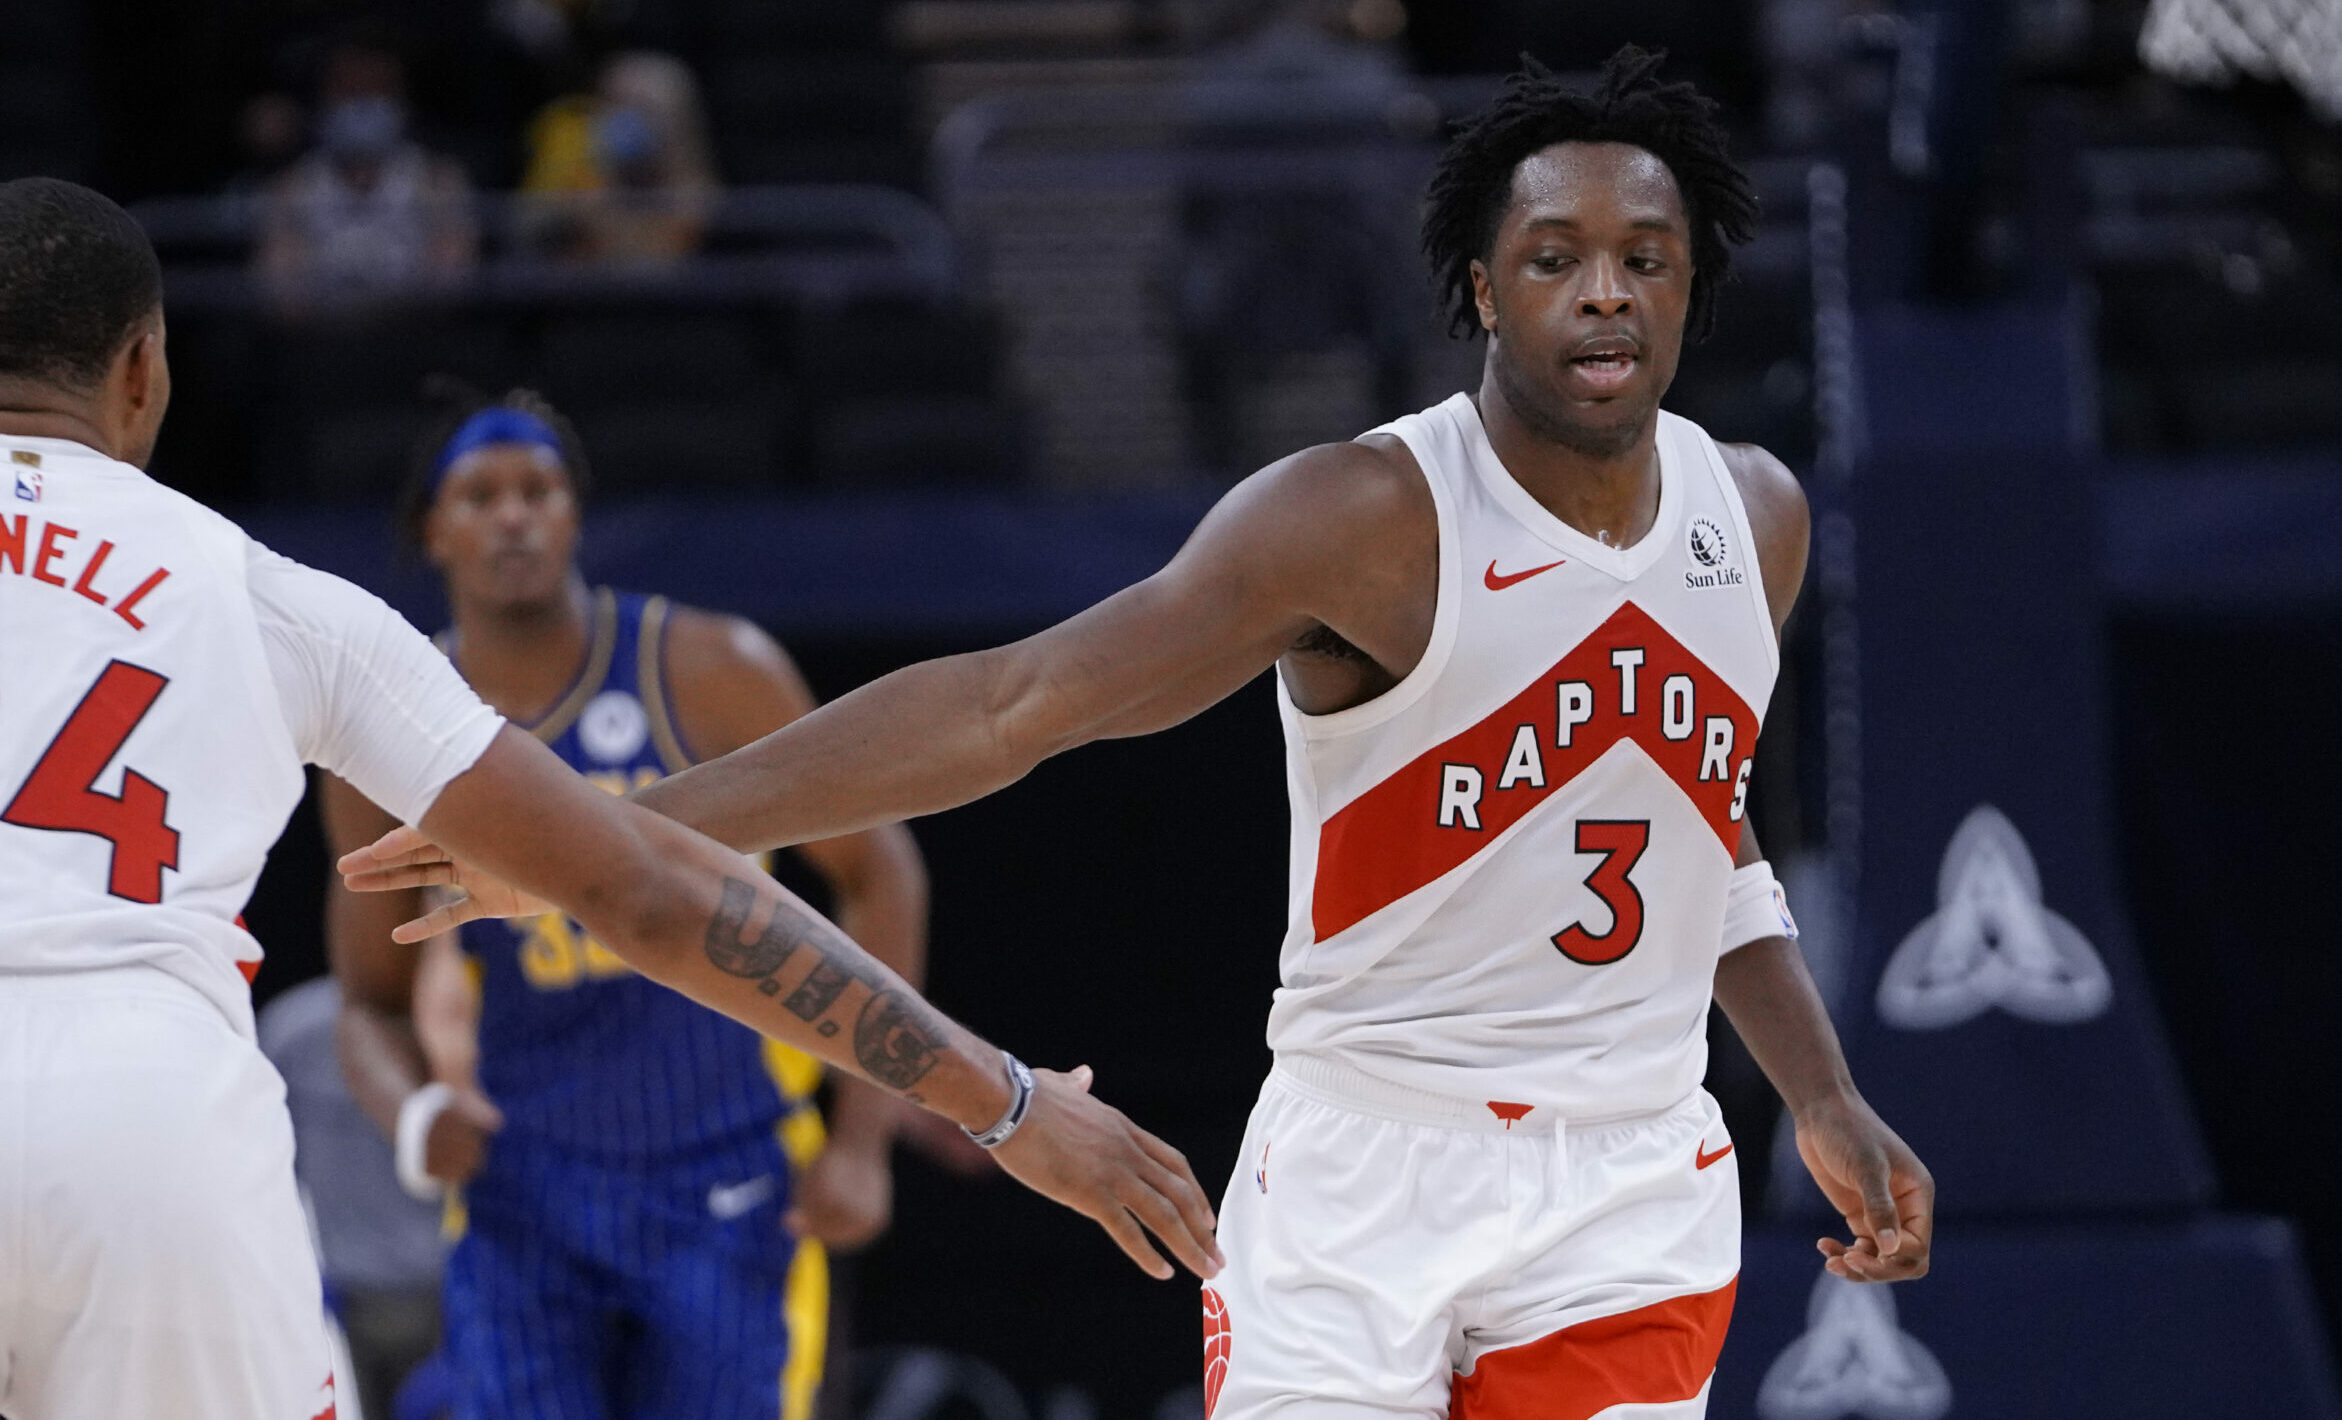 Anunoby Scores 30 As Raptors Hold Off Pacers